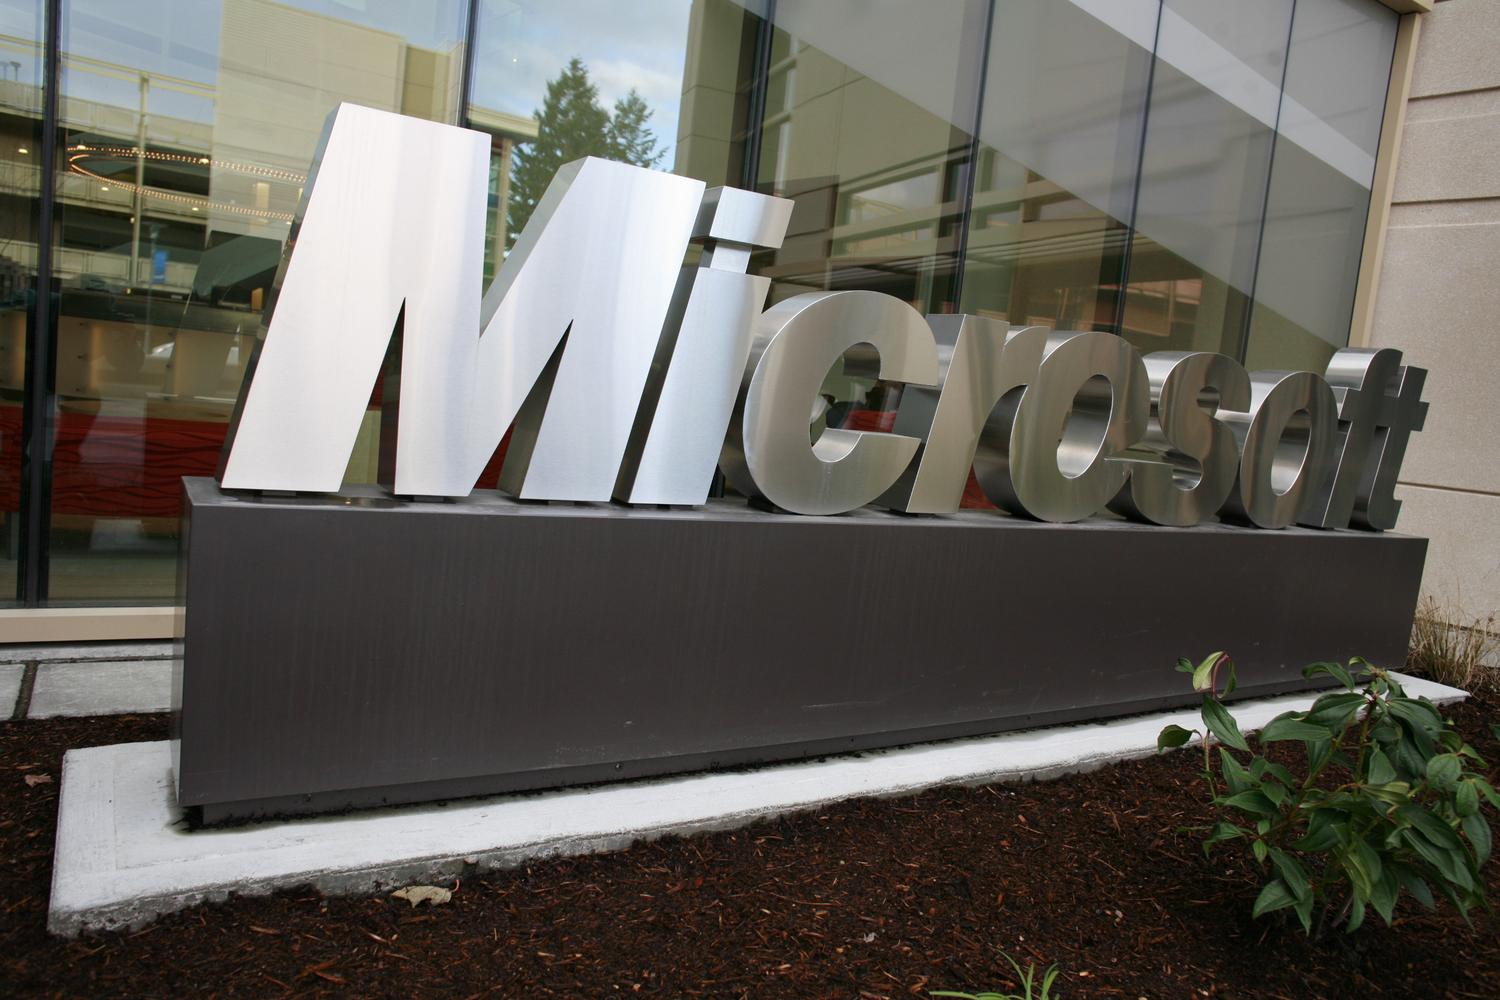 Microsoft Just Cut Thousands of Jobs